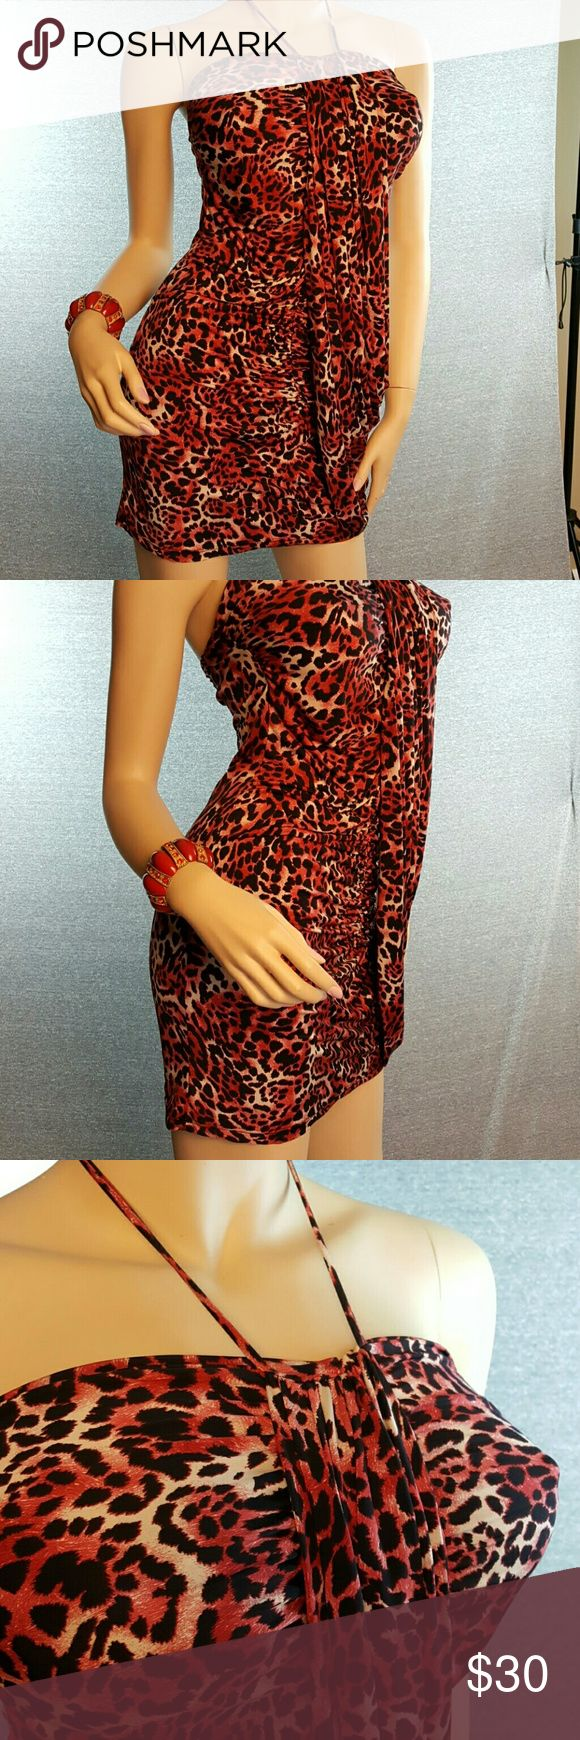 Red Cheetah Print Dress Club Party Super sexy poly/spandex dress with halter tie and drape panel over front. Like new, worn once. Sparkling Stars USA Dresses Mini